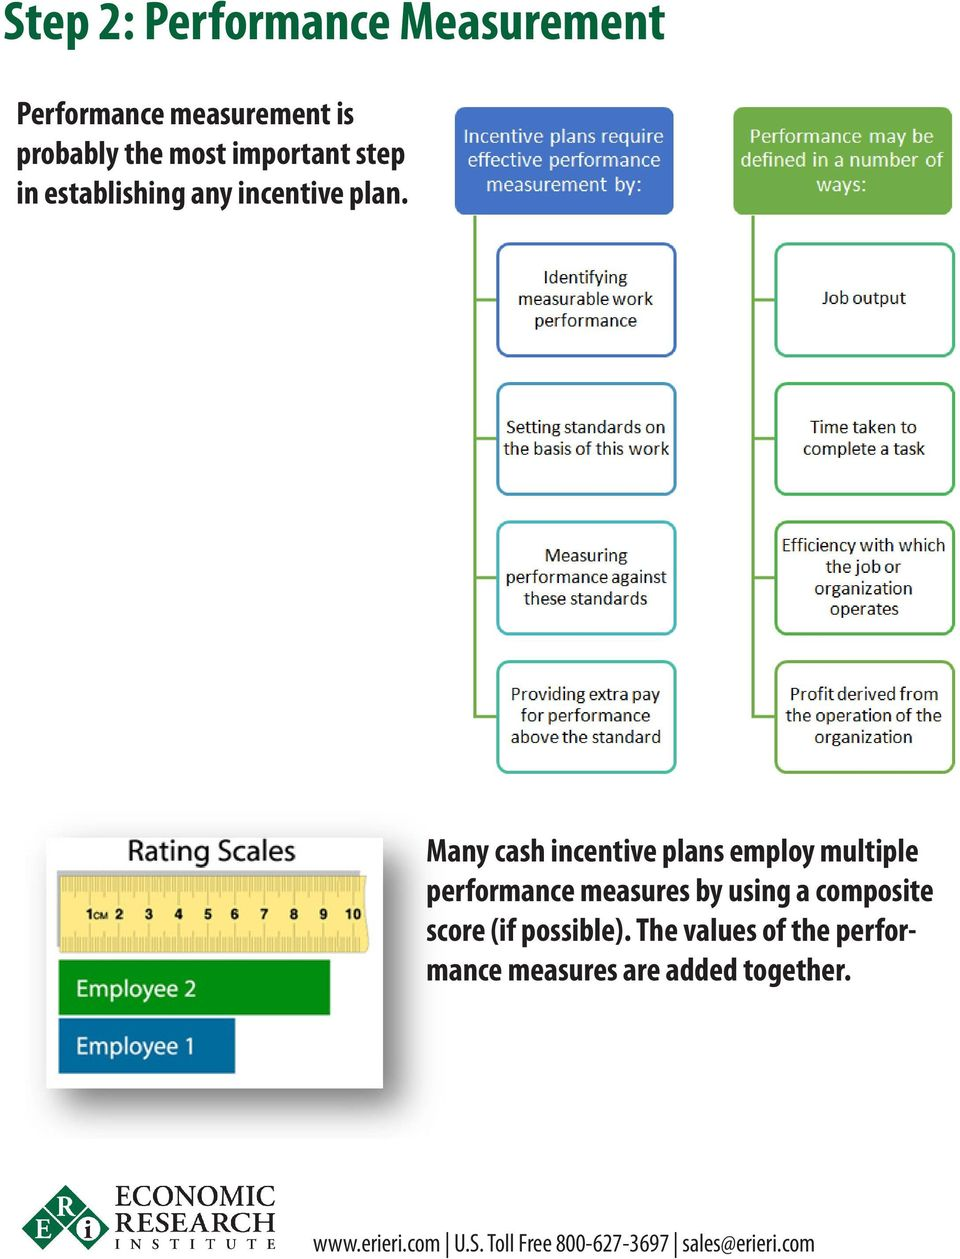 Many cash incentive plans employ multiple performance measures by using